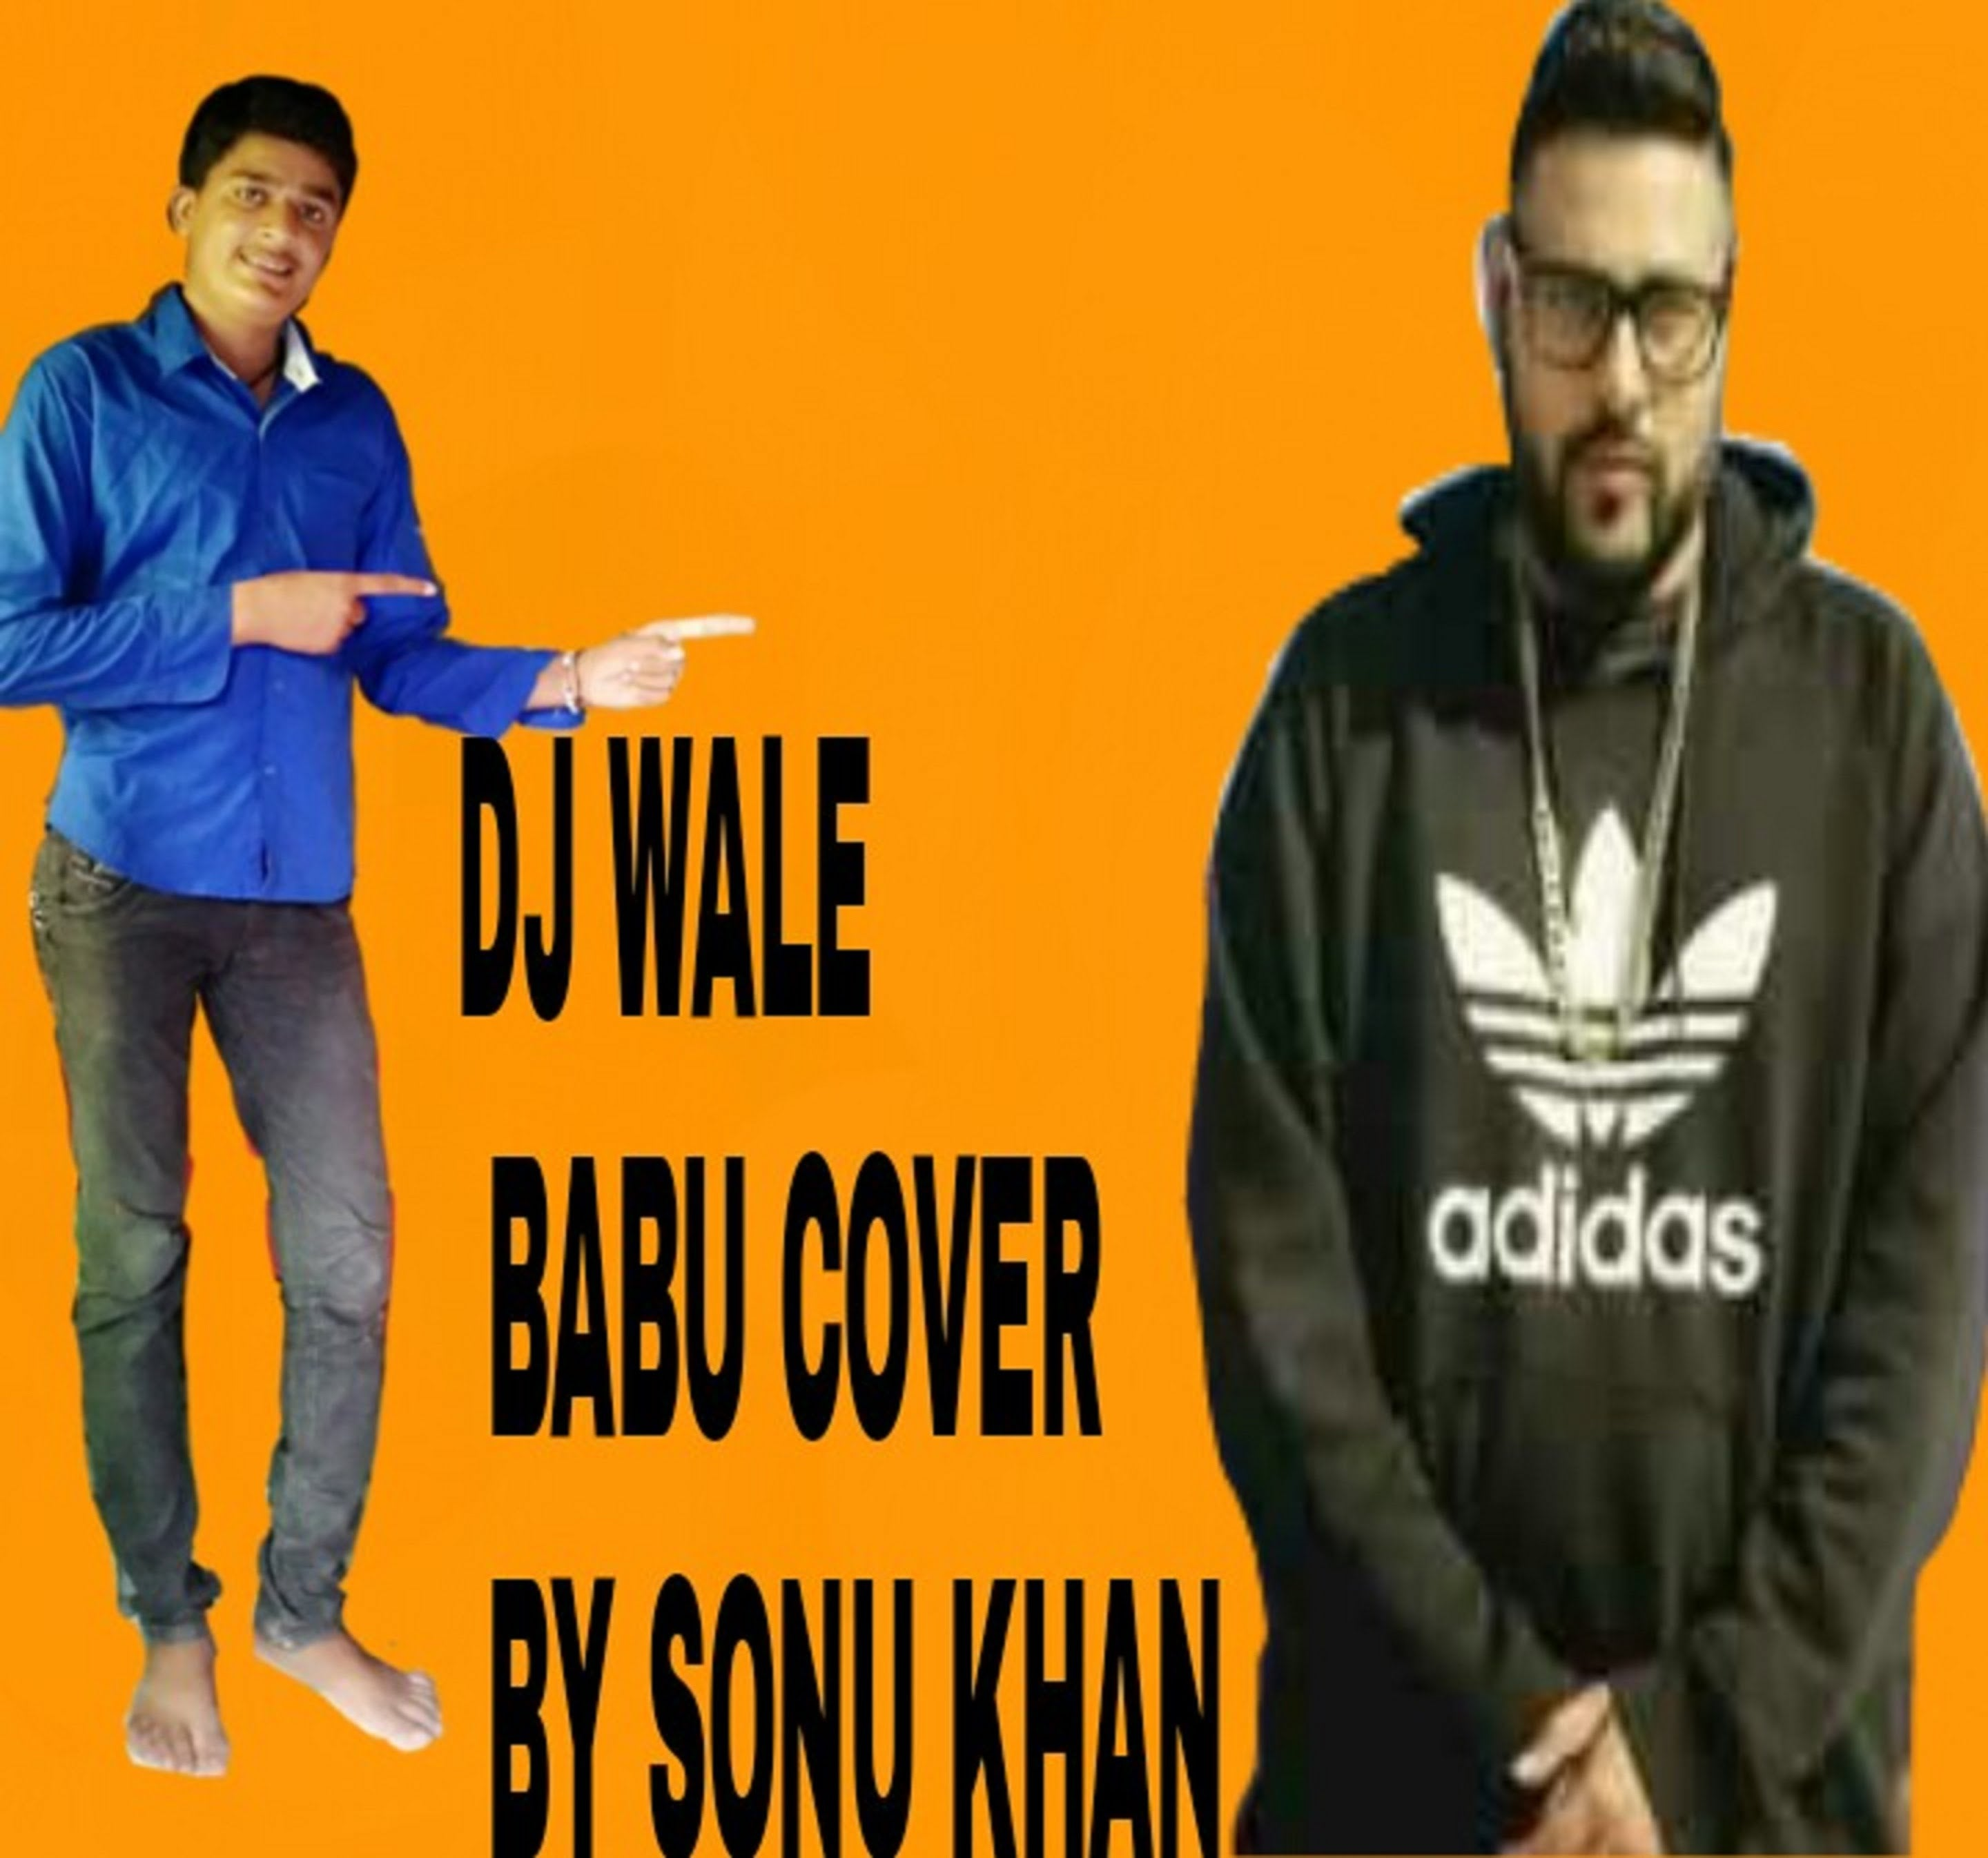 Dj wale babu video song download full hd 1080p